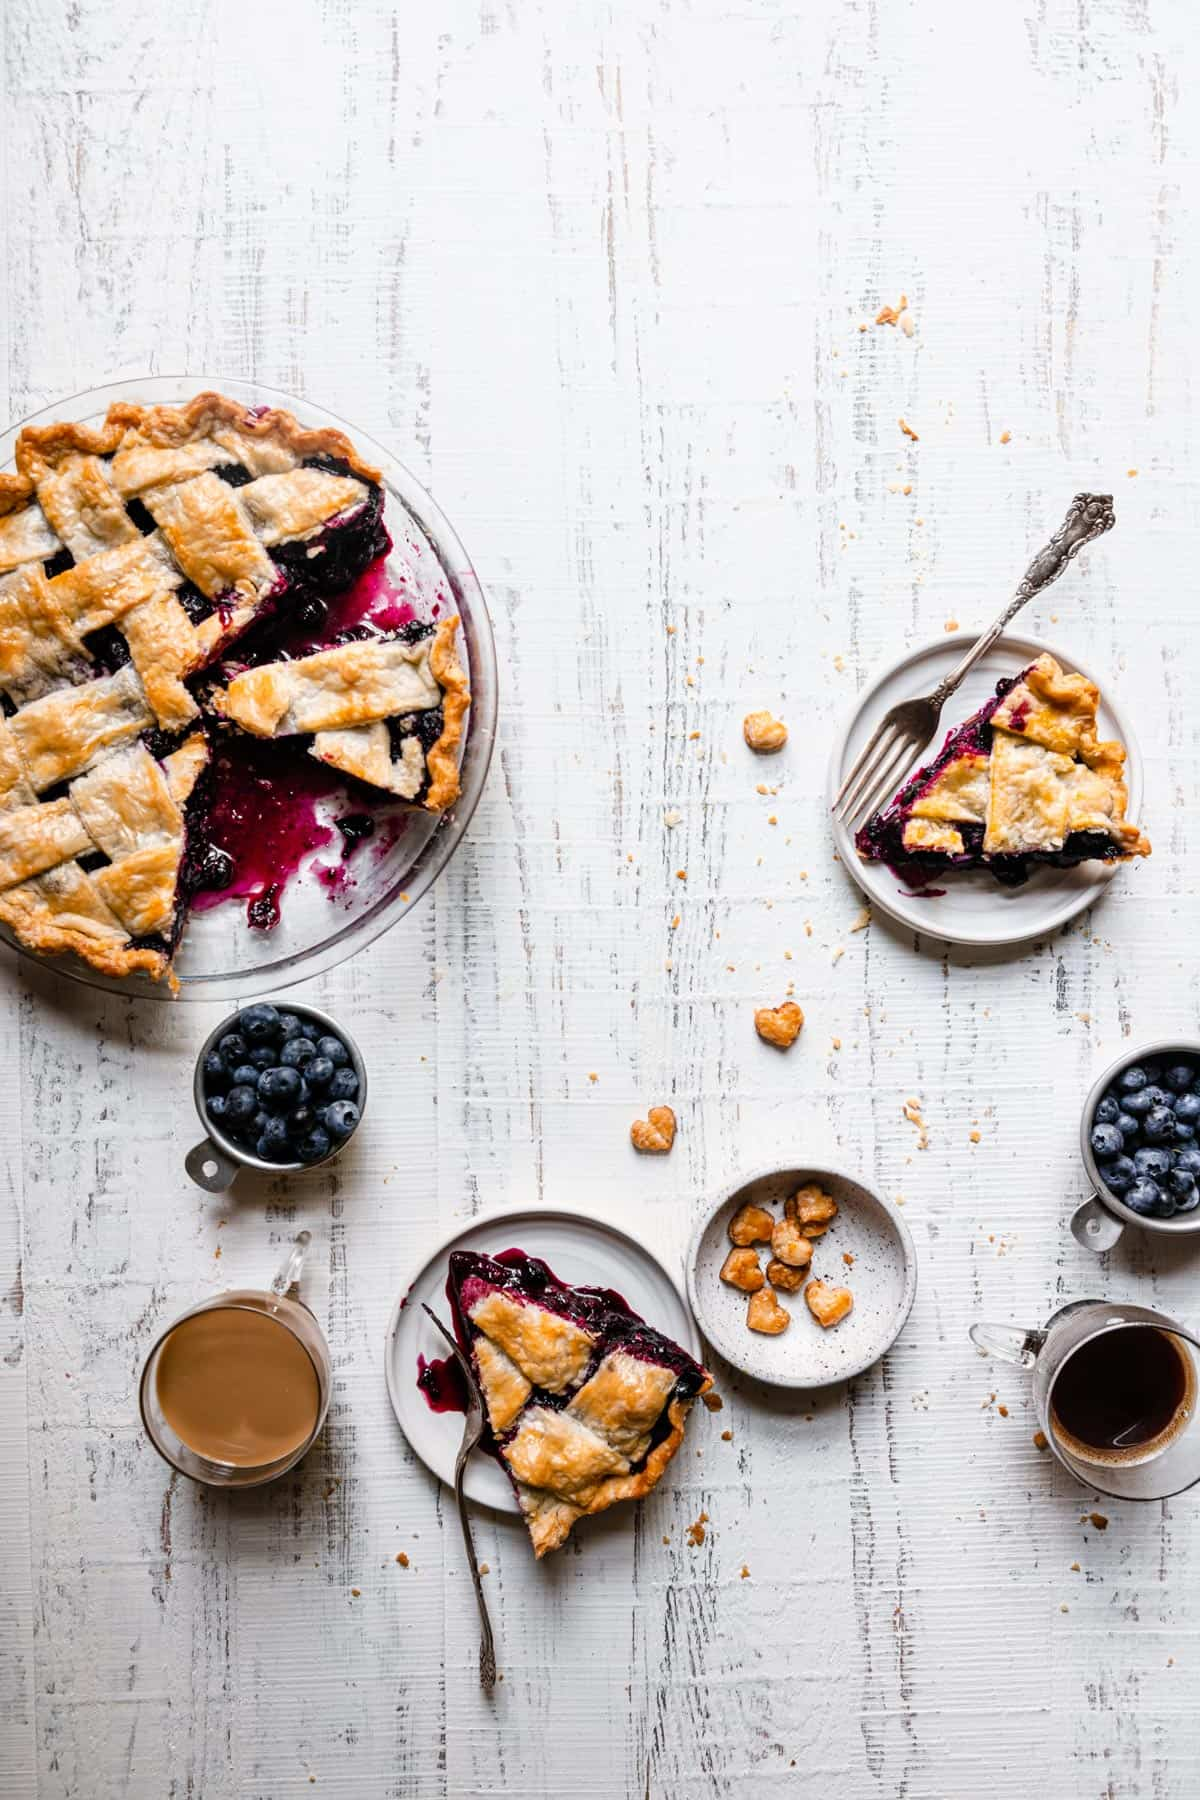 Blueberry lavender pie recipe, how starches thickens.